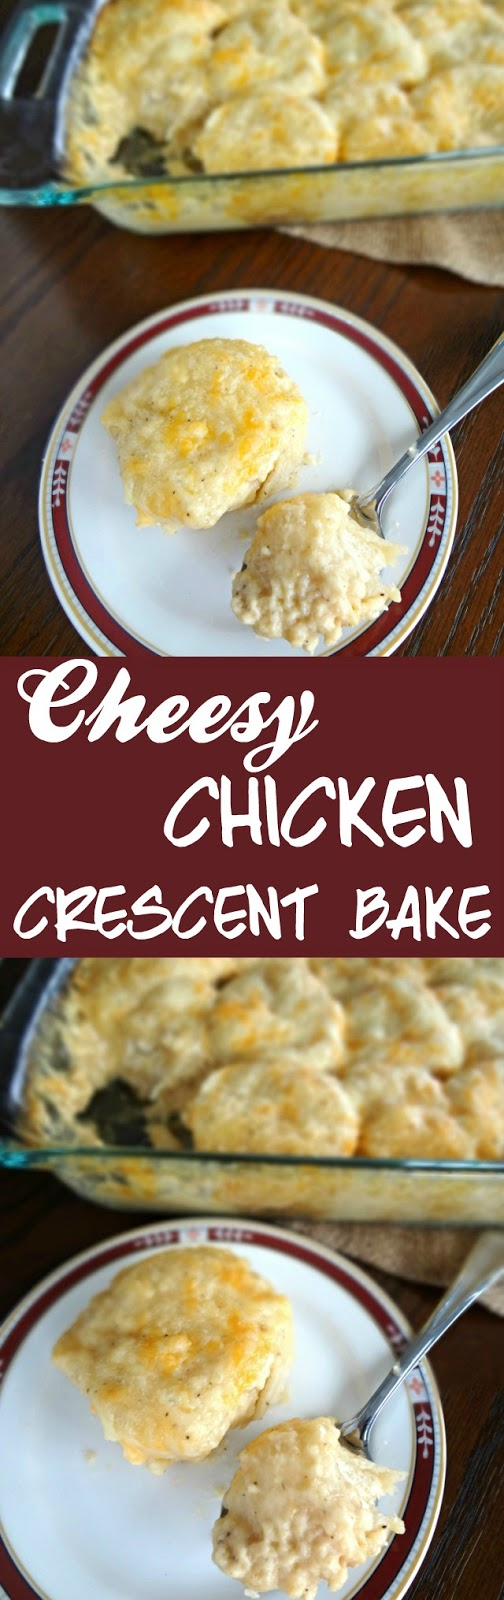 Cheesy Chicken Crescent Bake